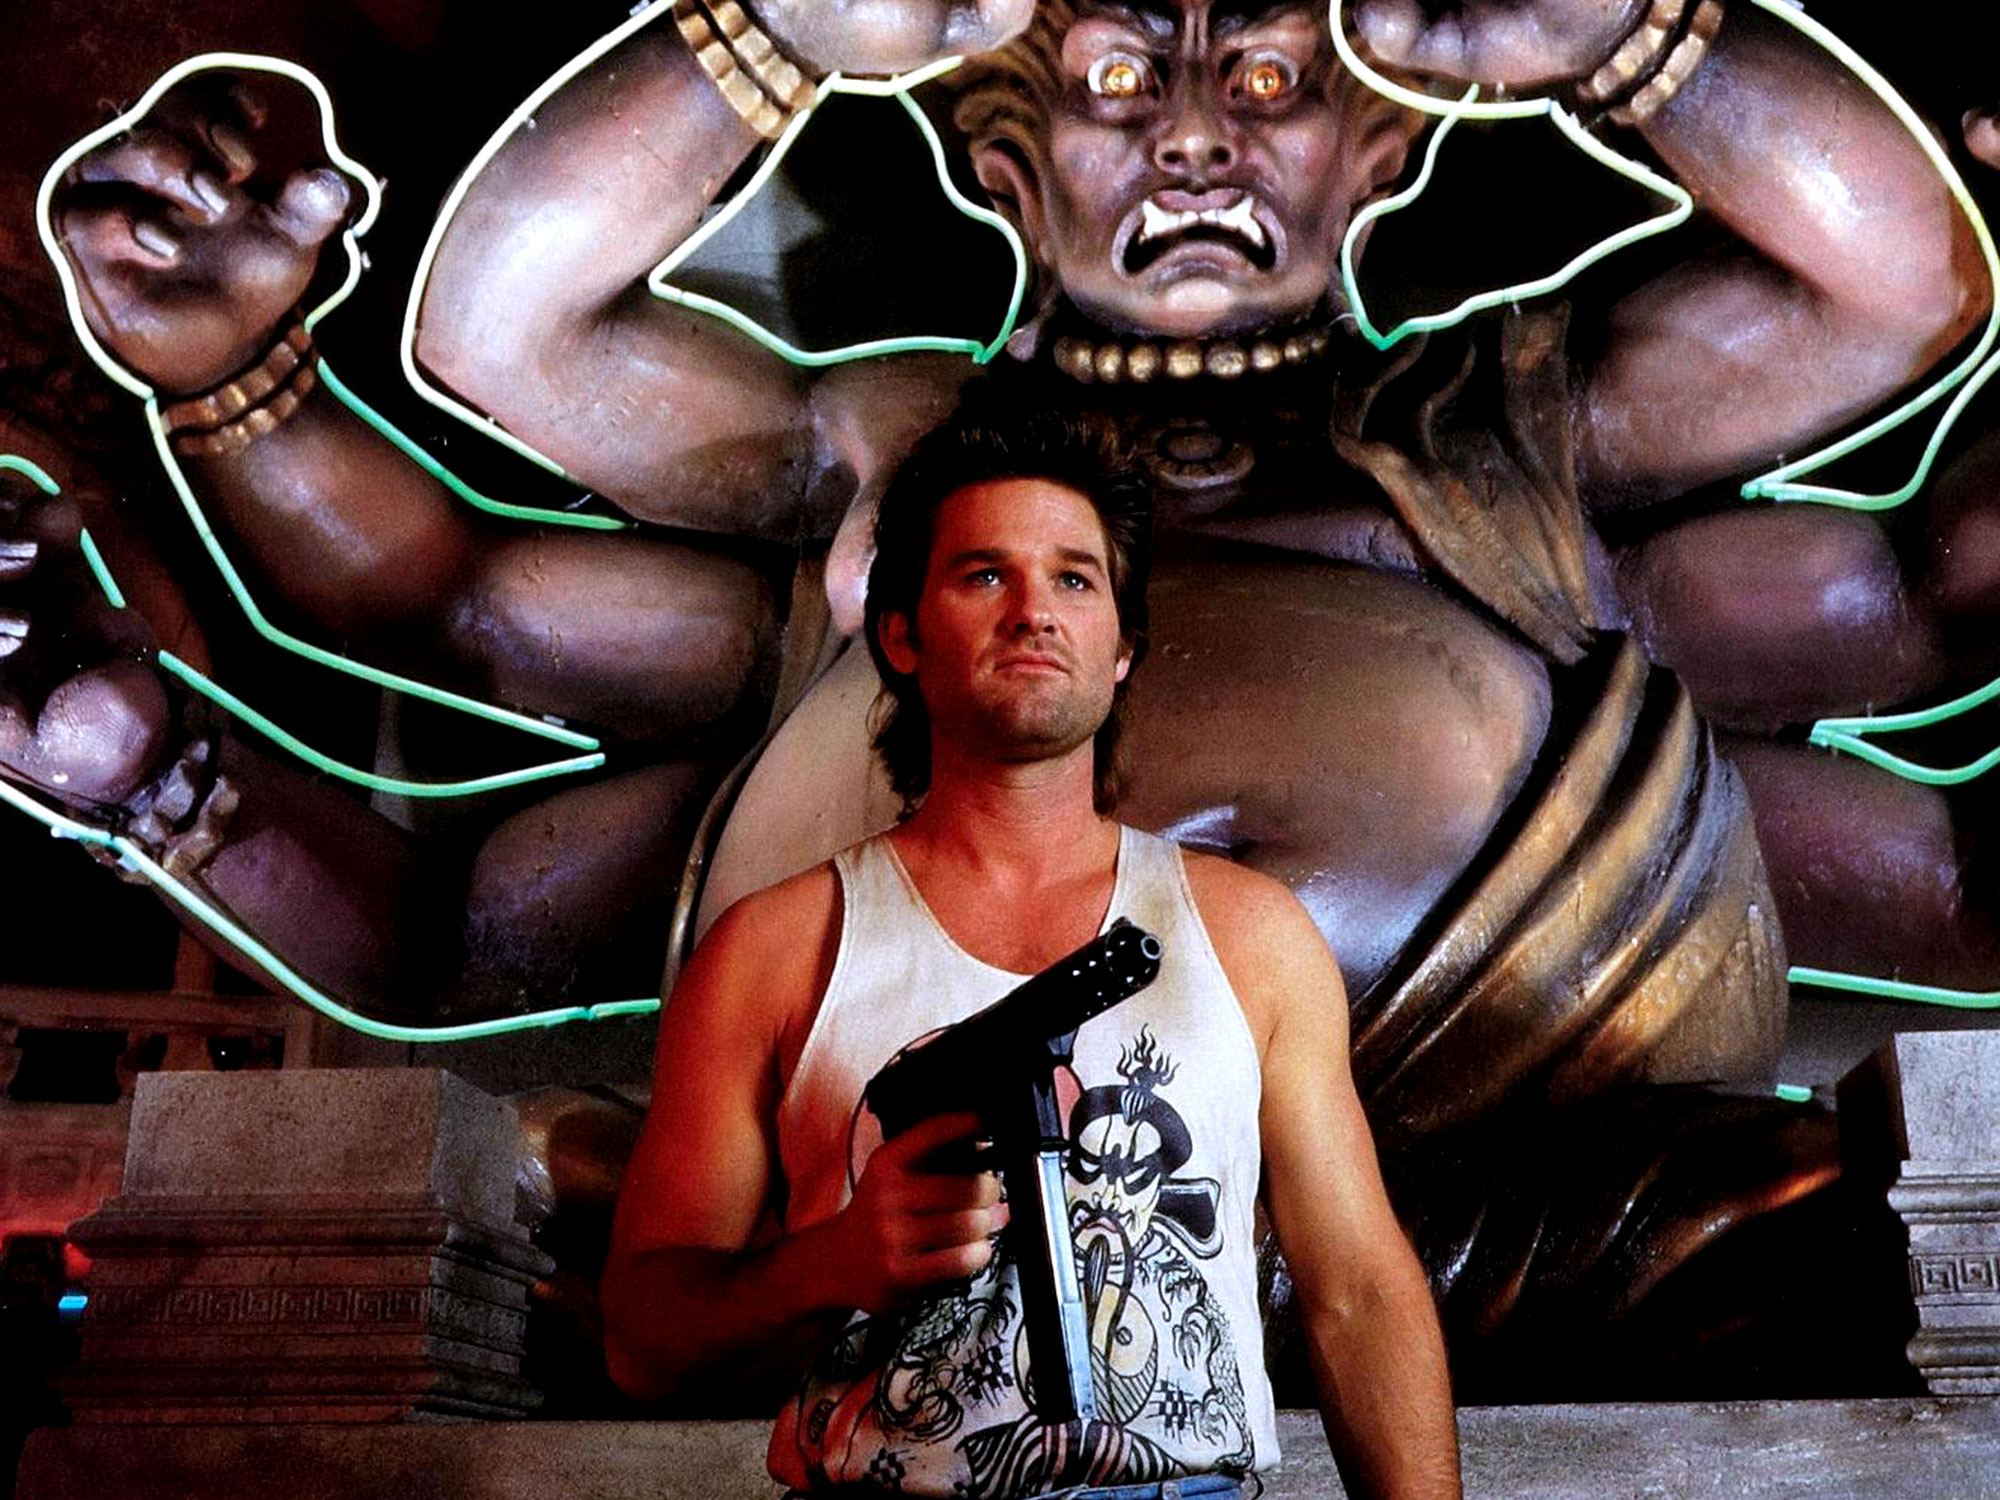 Kurt Russell as Jack Burton in Big Trouble in Little China (1986)